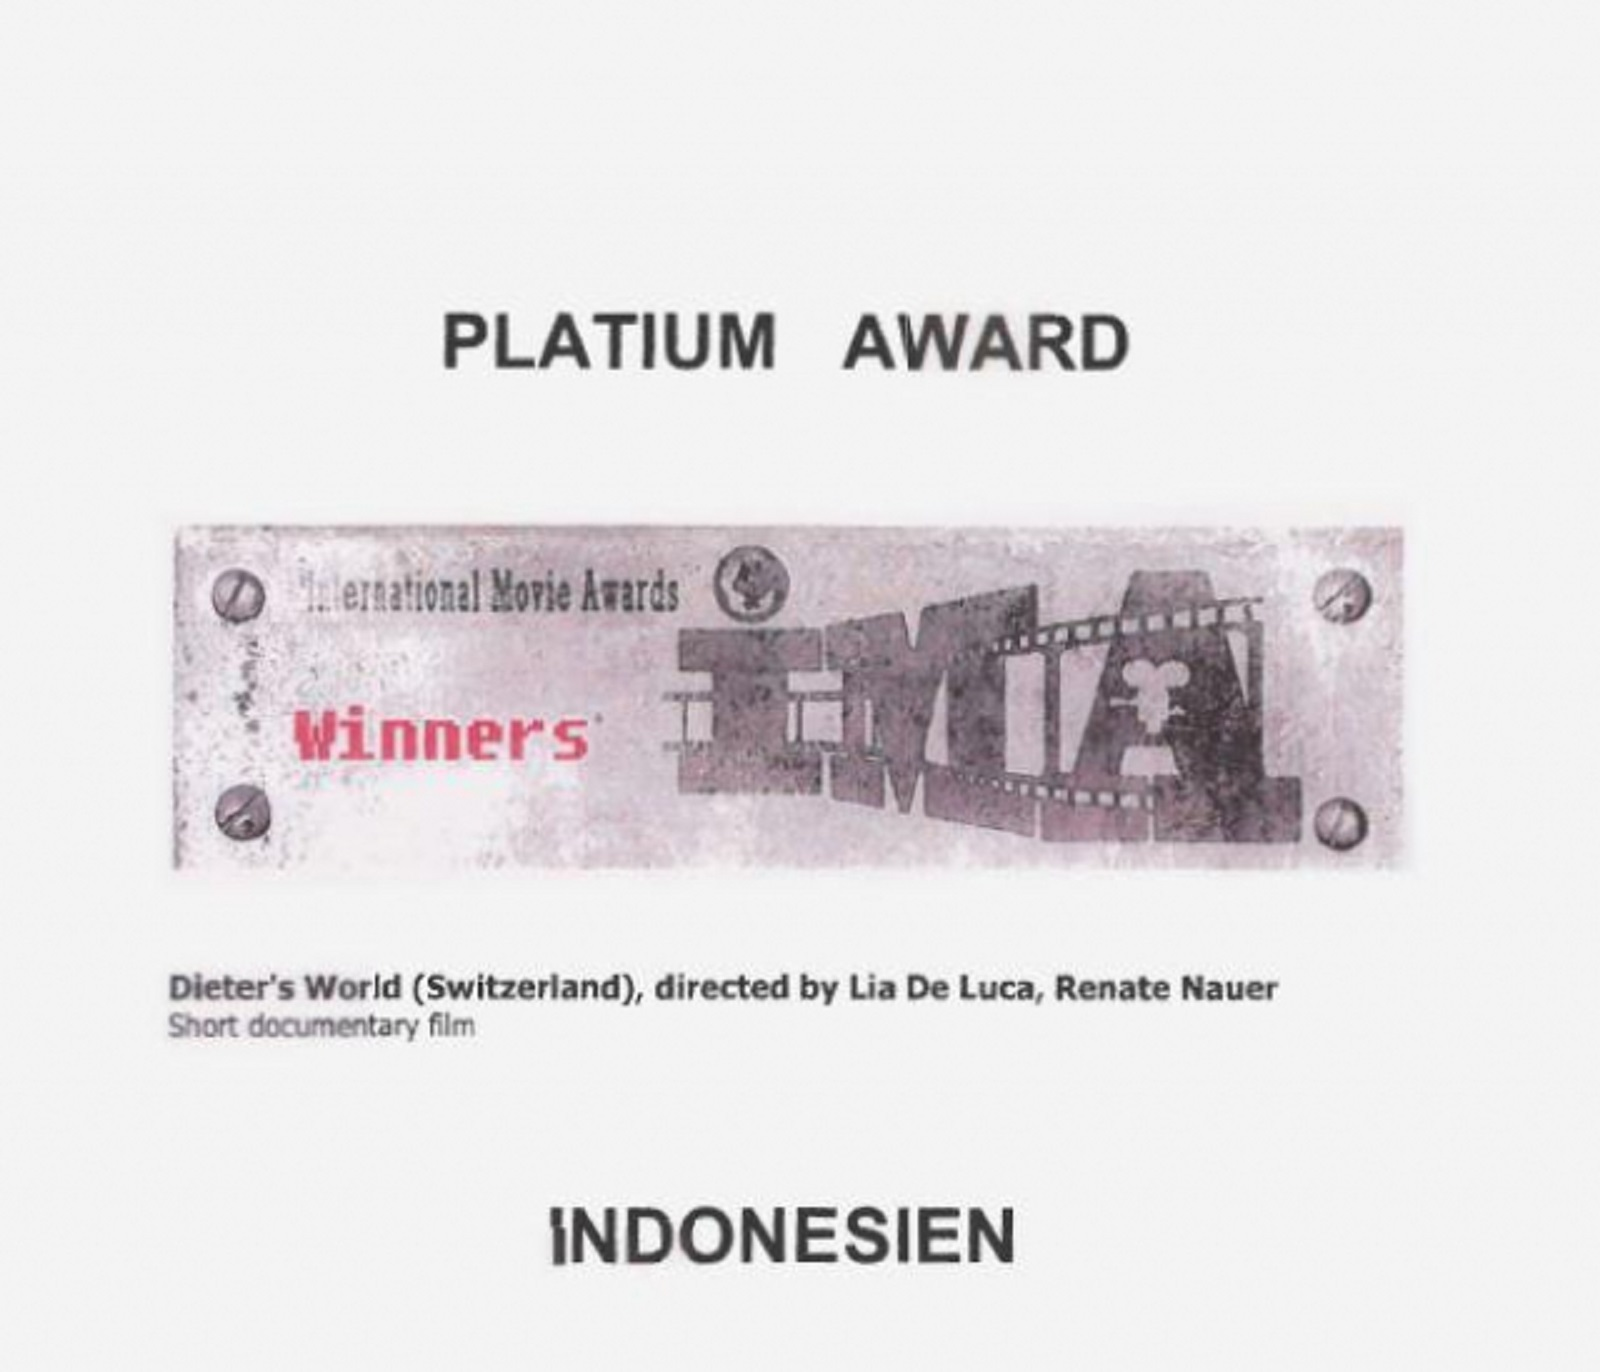 image-8122796-Indonesien_Award.jpg